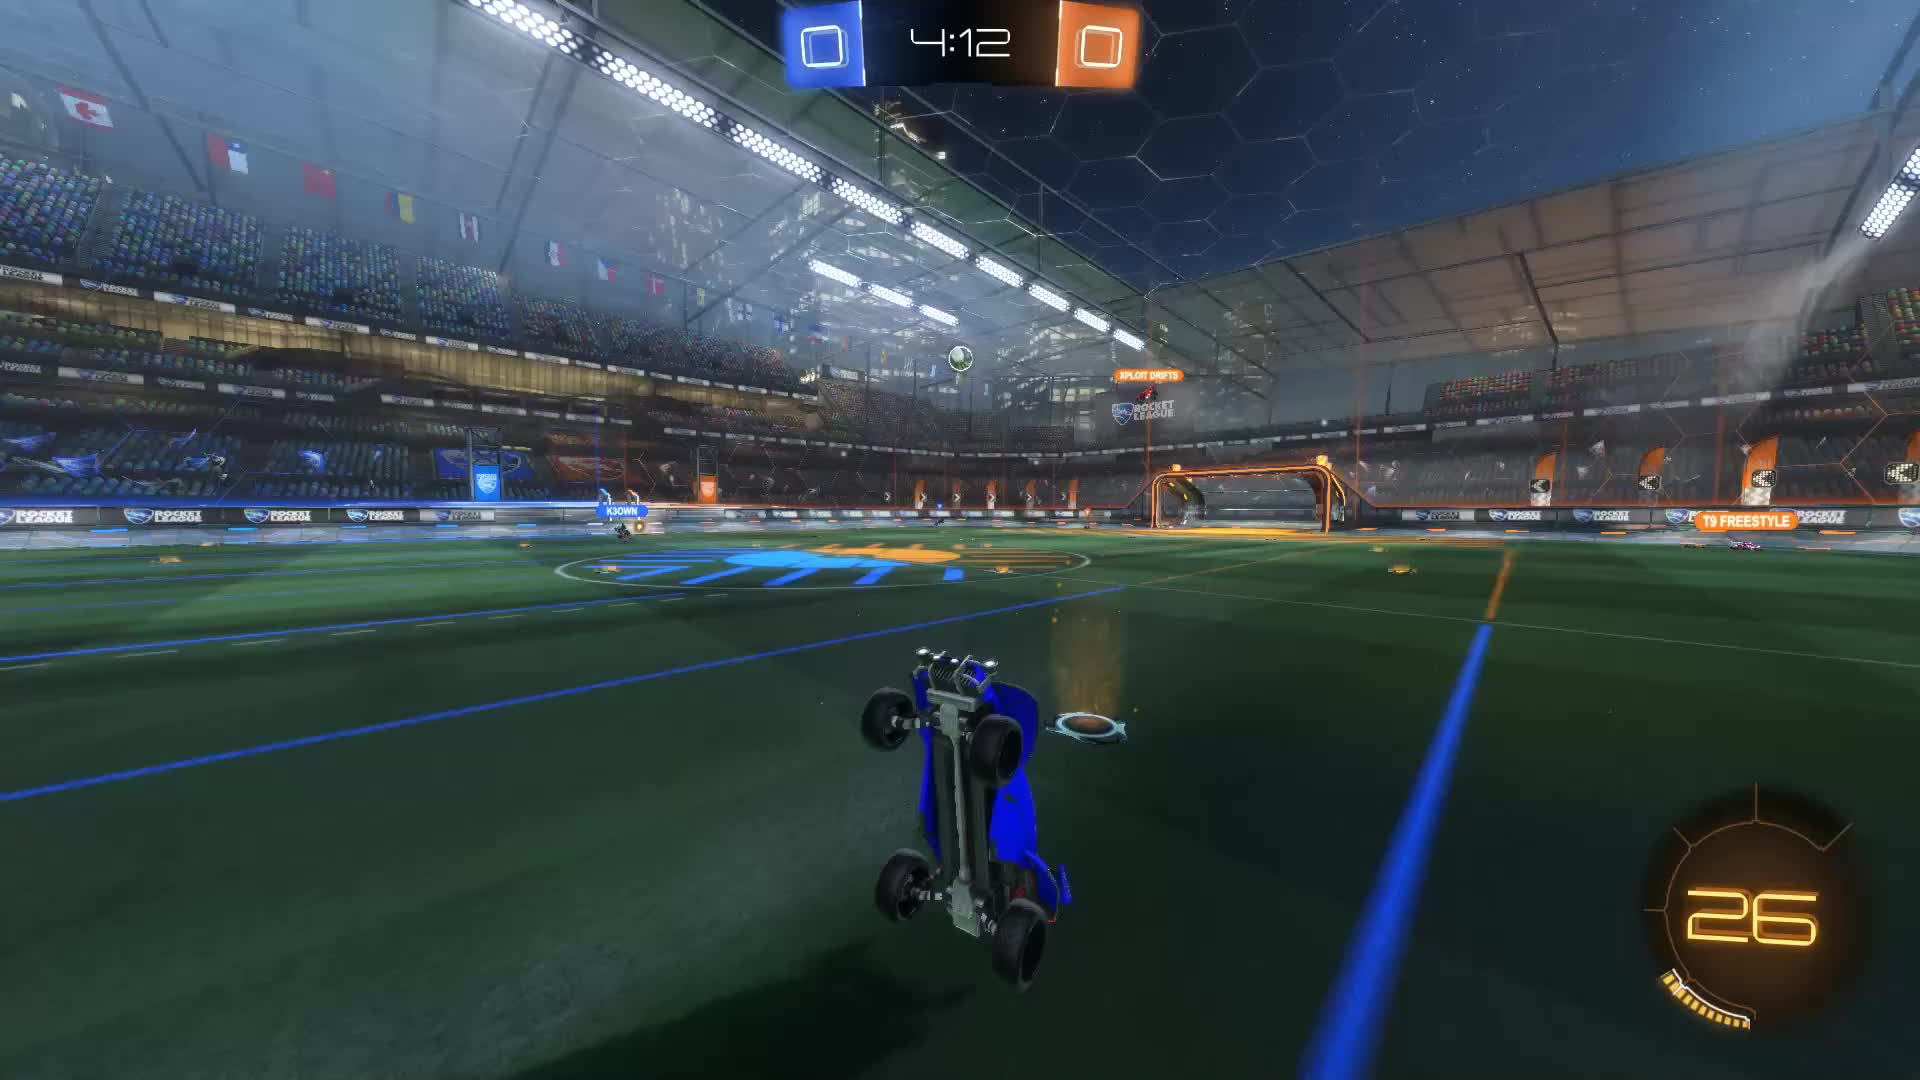 Gif Your Game, GifYourGame, Goal, Rocket League, RocketLeague, shimmy, Goal 1: shimmy GIFs